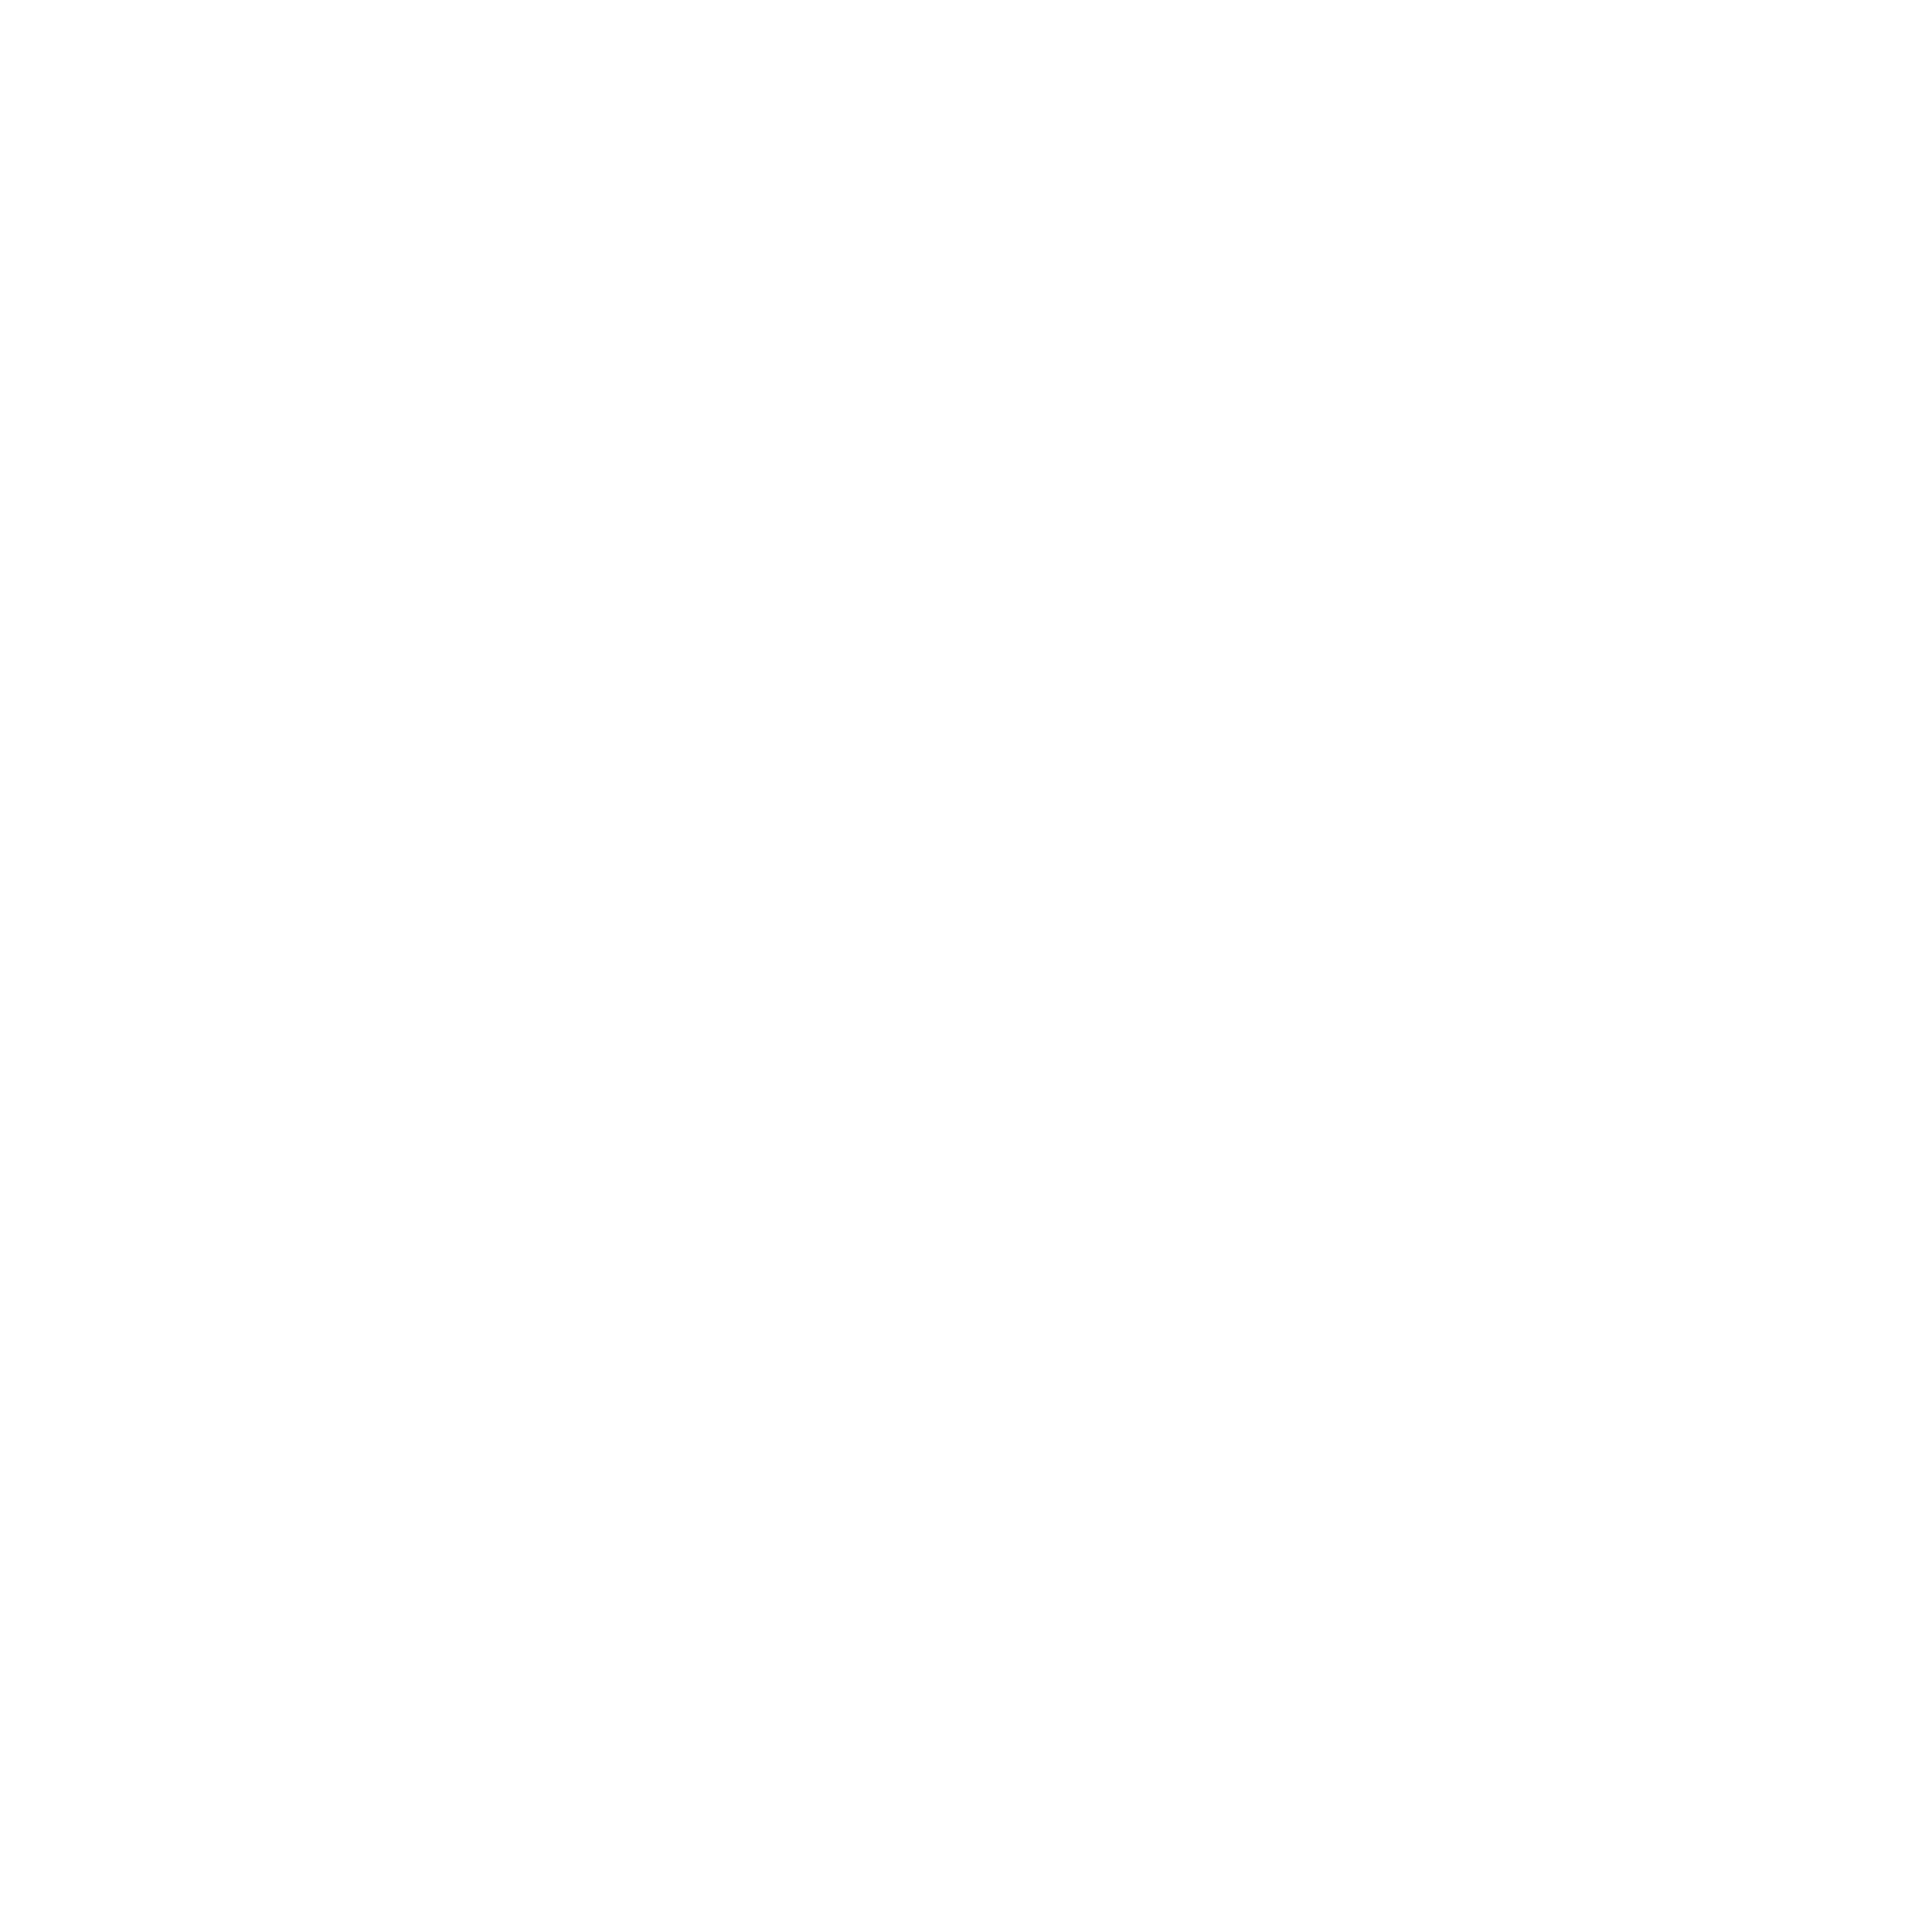 The Dawn of a New Breed! - M. Reid Legal Solutions is a new breed of law firm that is dedicated to fighting for you. While providing you with the highest level of service possible.